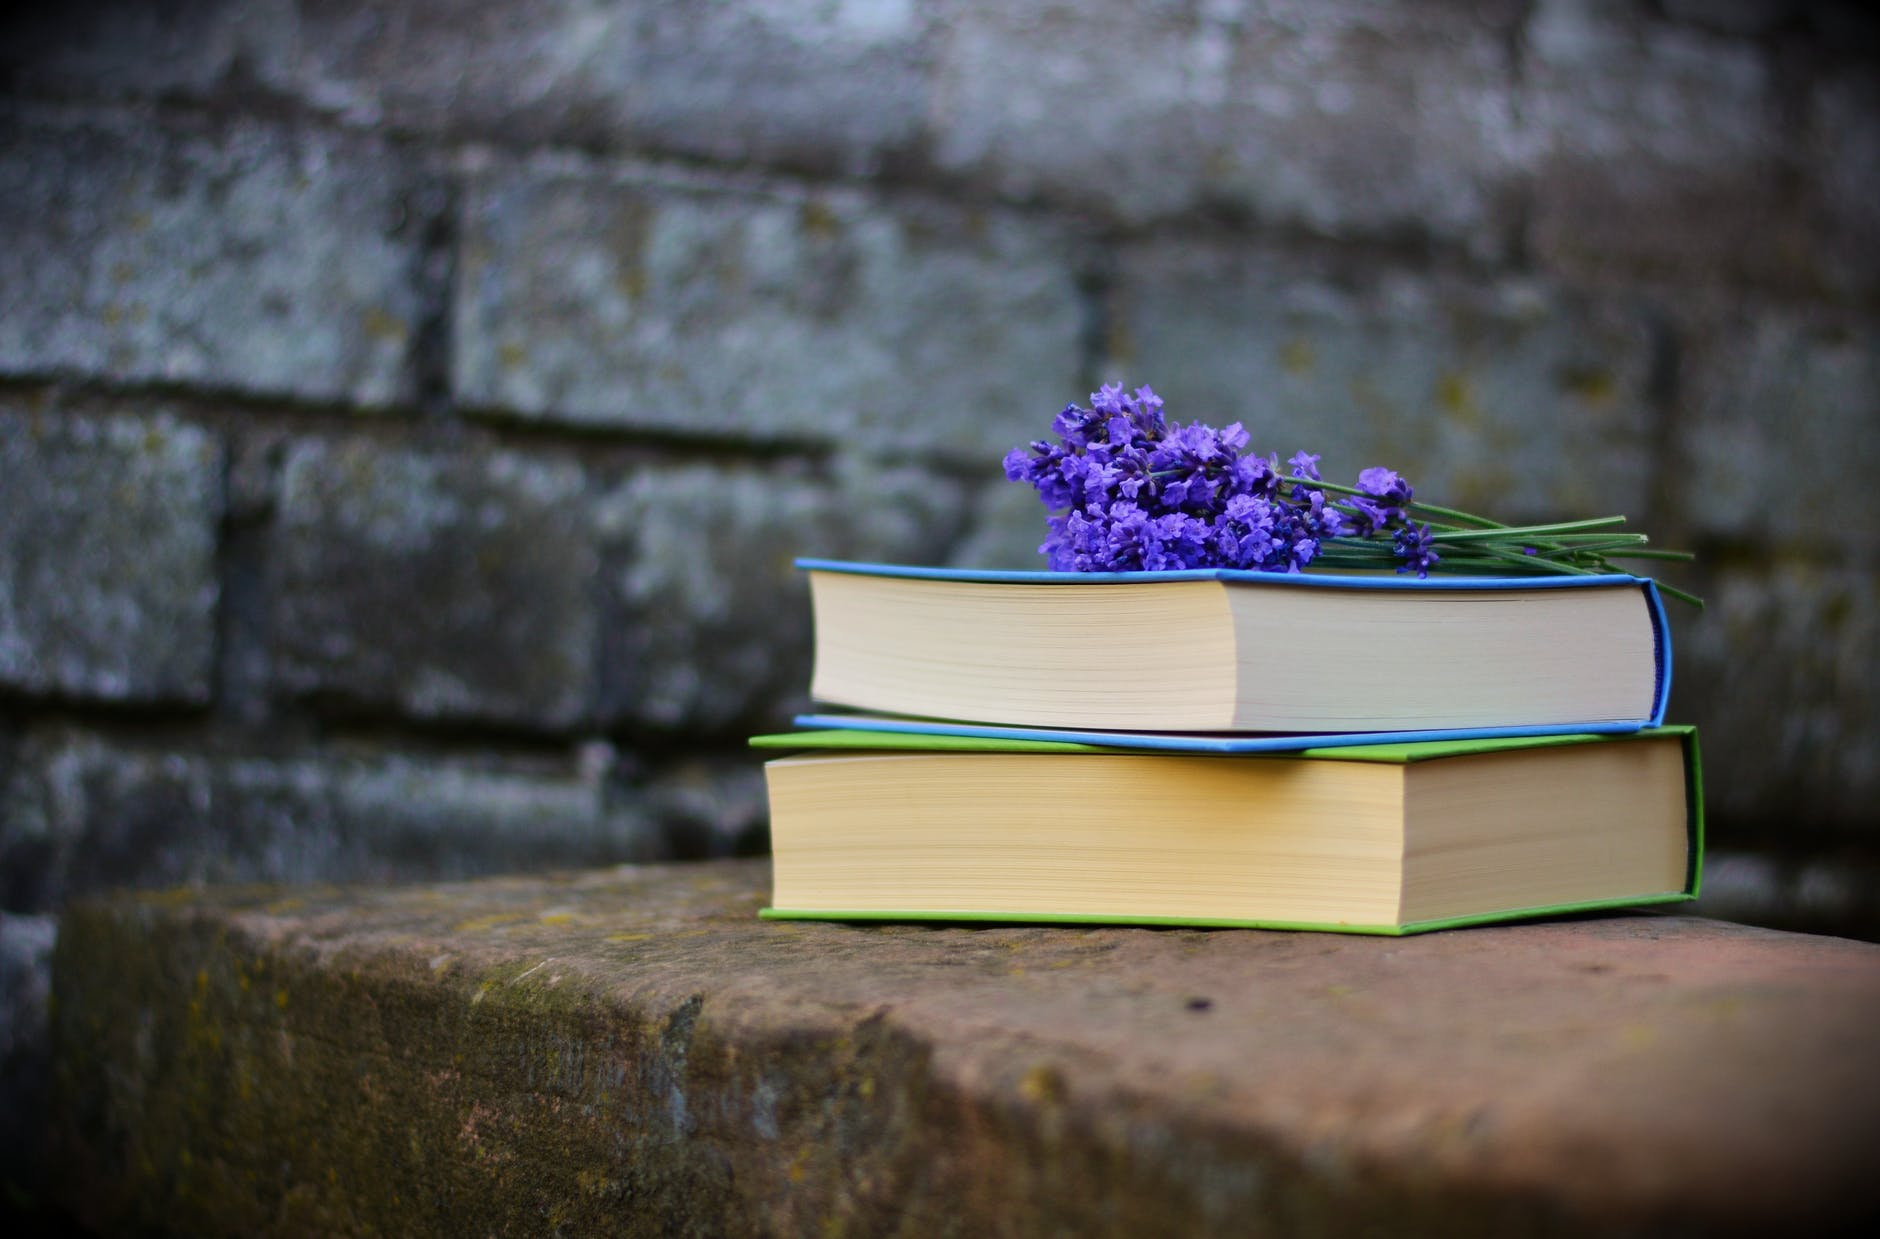 purple flower at the top of two books on a bench